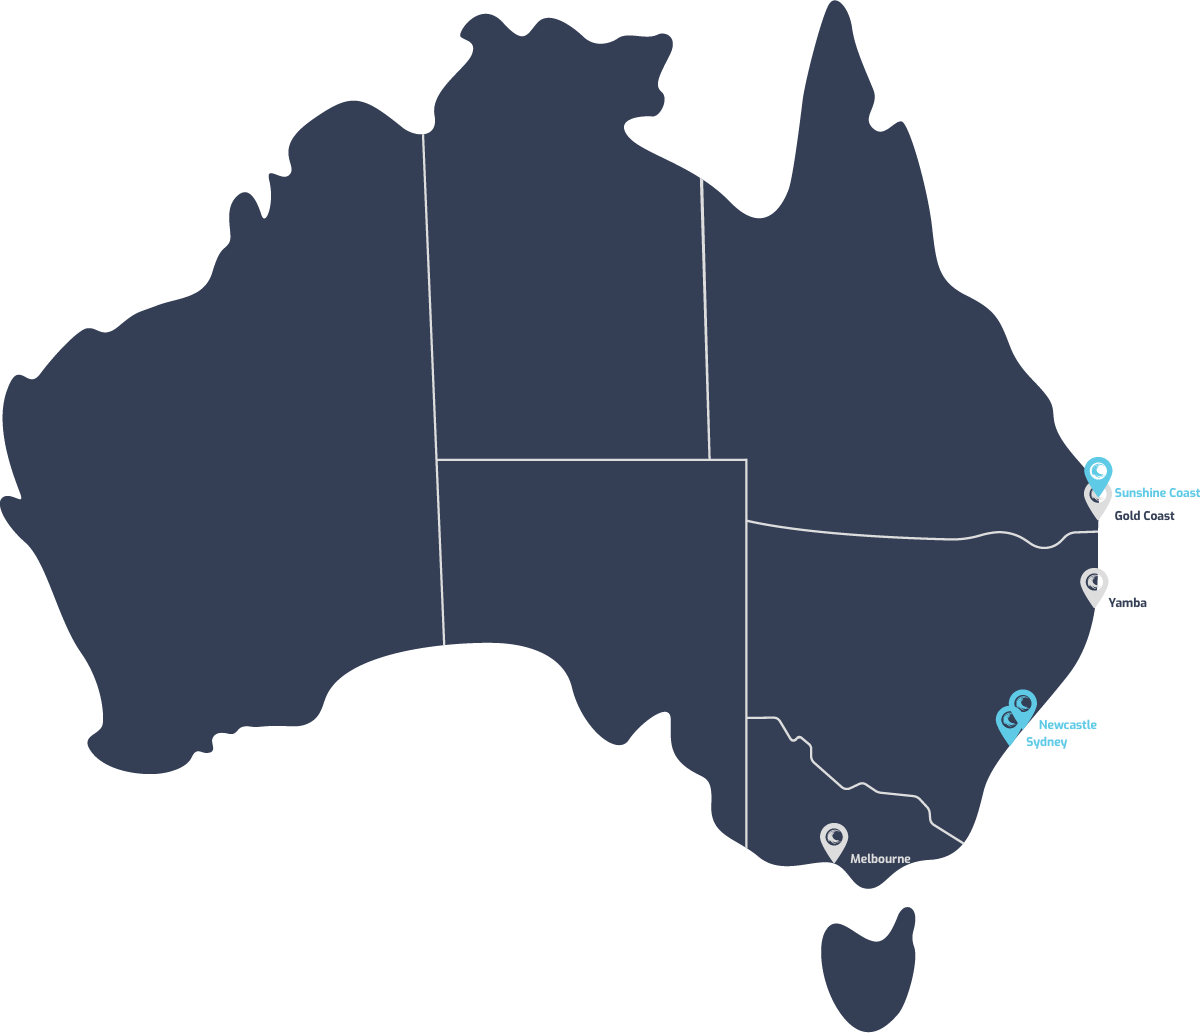 Map_For_Website.png